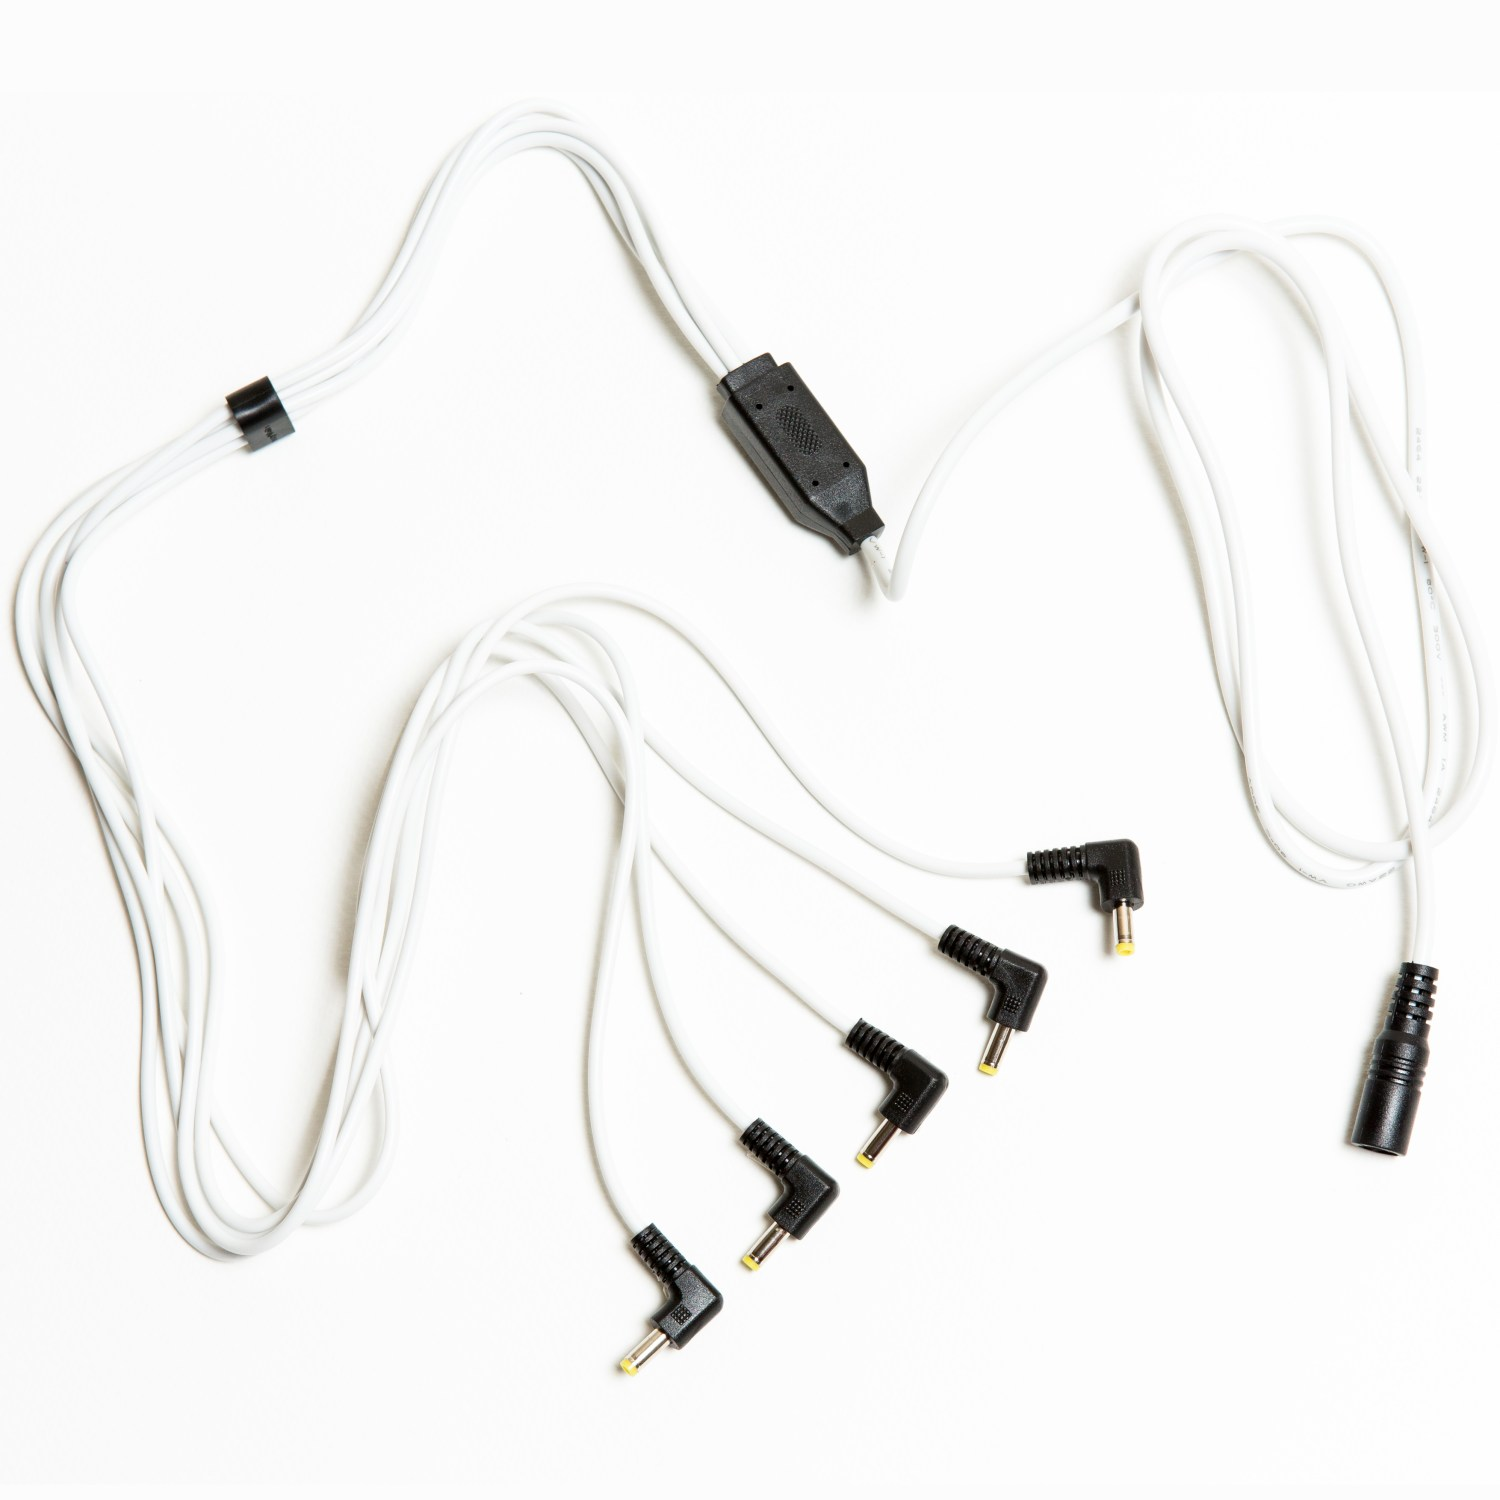 5 Way Power Splitter Cable For Korg Volca By Myvolts 5